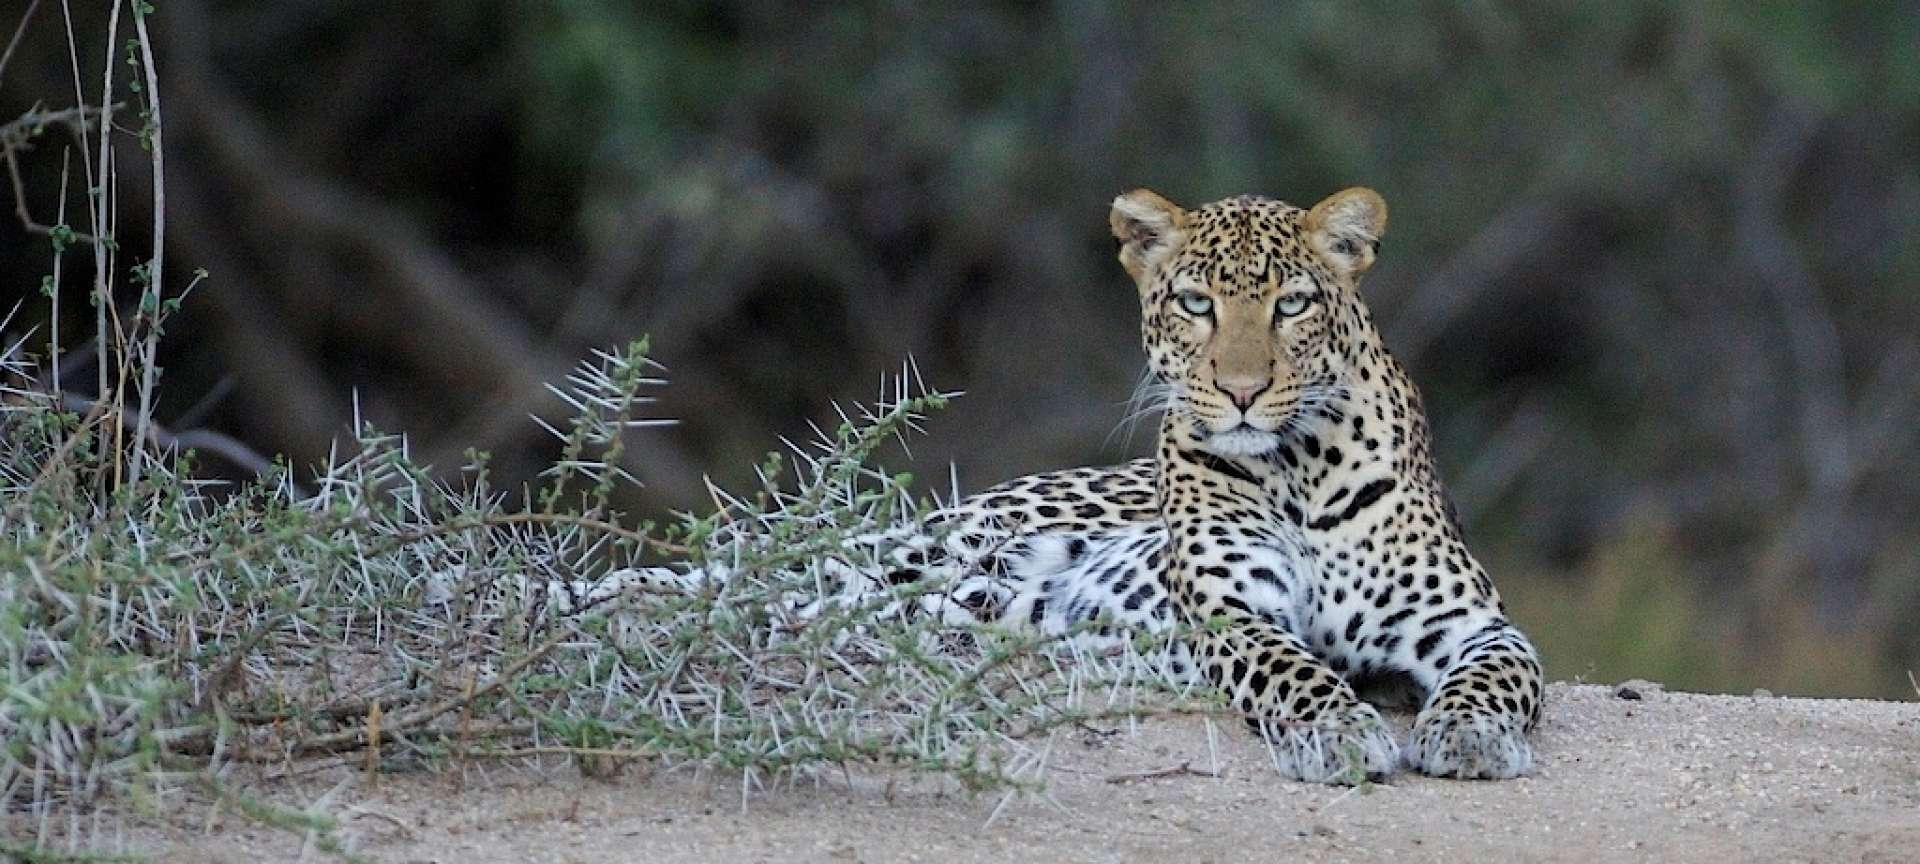 Wildlife in South Africa_Leopard